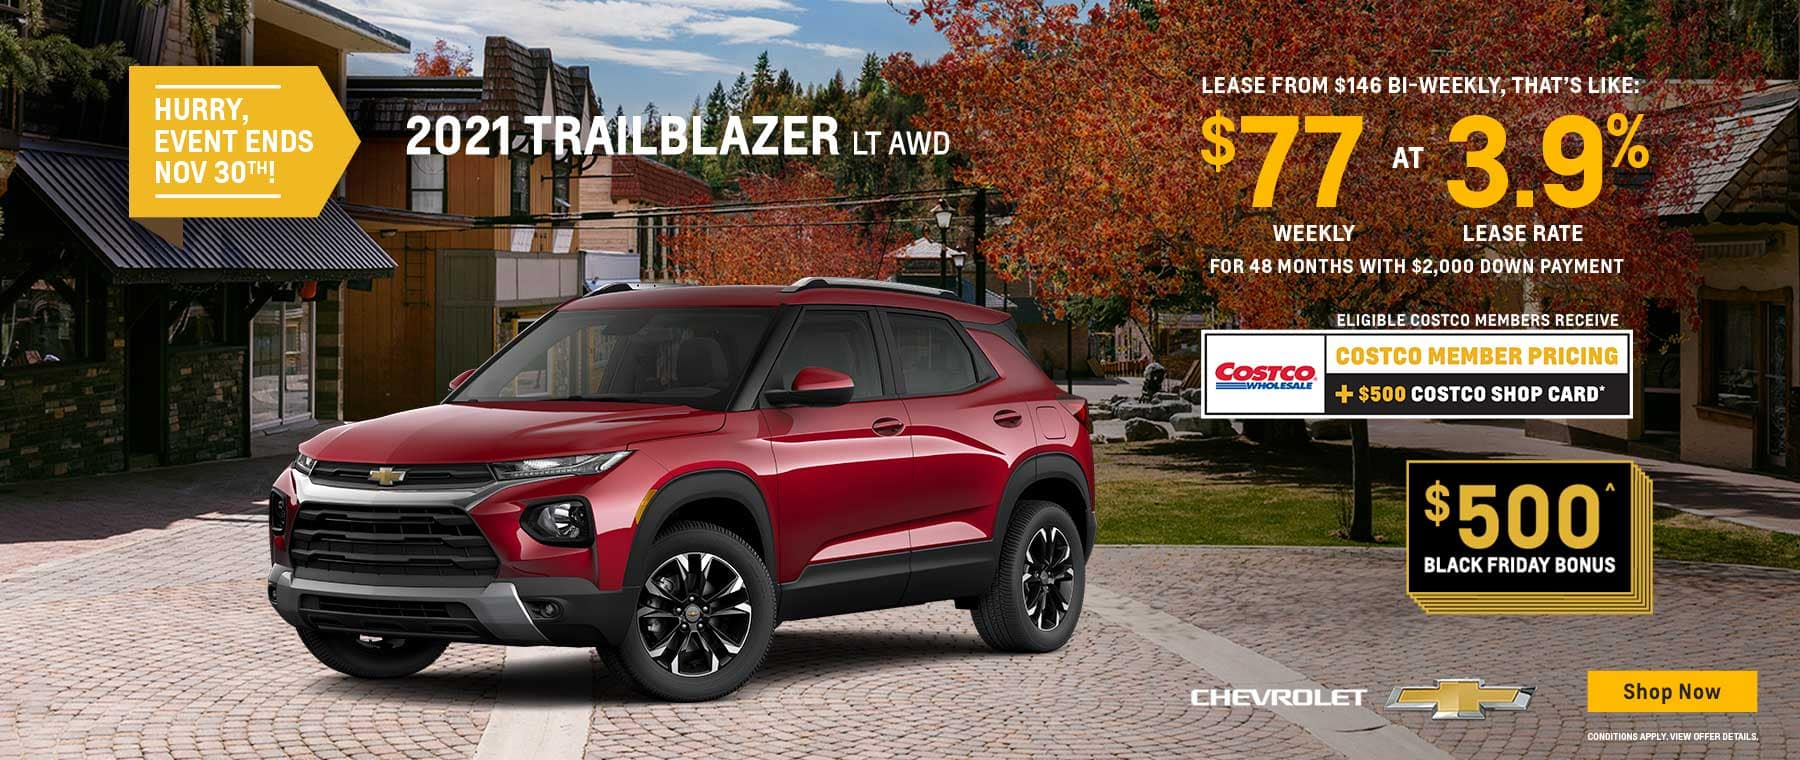 TRAILBLAZER_AWD_ABPR_2020_NOV_WST_Chevy_T3_EN_1800x760_Black-Friday_Multi_v2_FNL